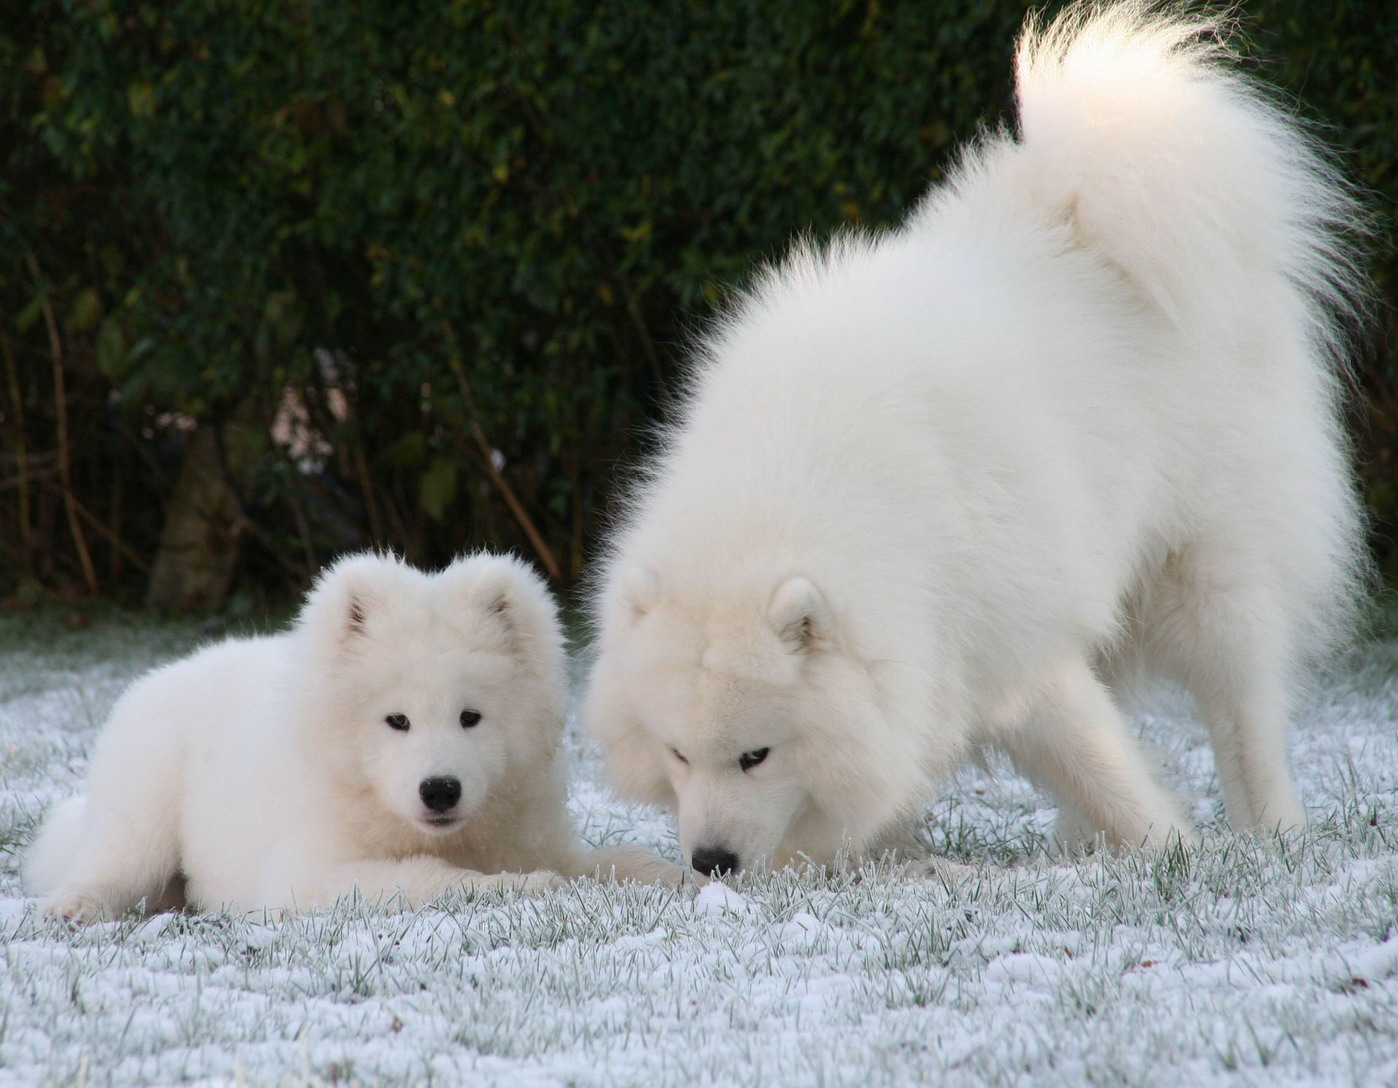 Adult and puppy Samoyeds playing outdoor in the snow